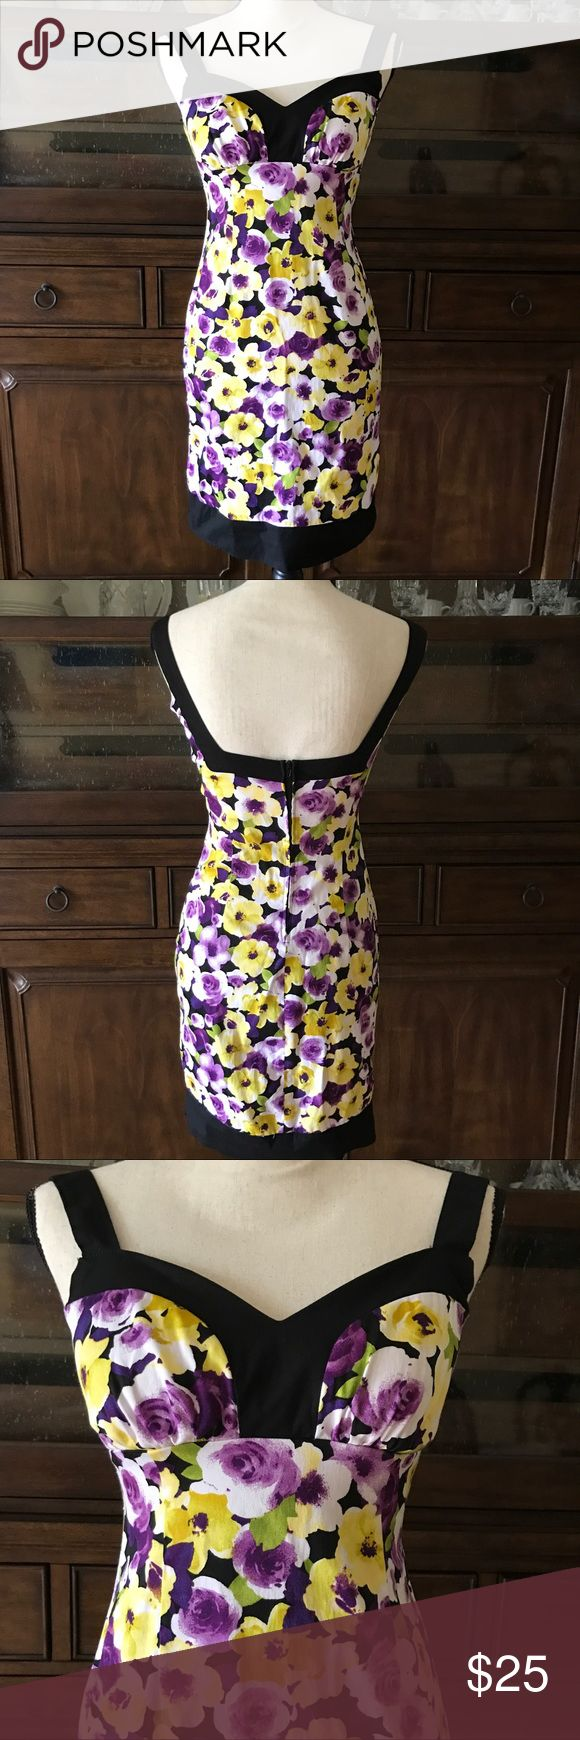 "B Smart Sundress Floral Back Zipper Stretch Size 4 Brand: B Smart Size: 4 Color: Black Trim - Purple Yellow Floral Style/Specifics: Sundress - Back Zipper - Small Amount of Stretch  ALL MEASUREMENTS   ARMPIT TO ARMPIT "" WAIST "" HIPS "" LENGTH FROM BACK OF DRESS TO HEM "" B.Smart Dresses Mini"